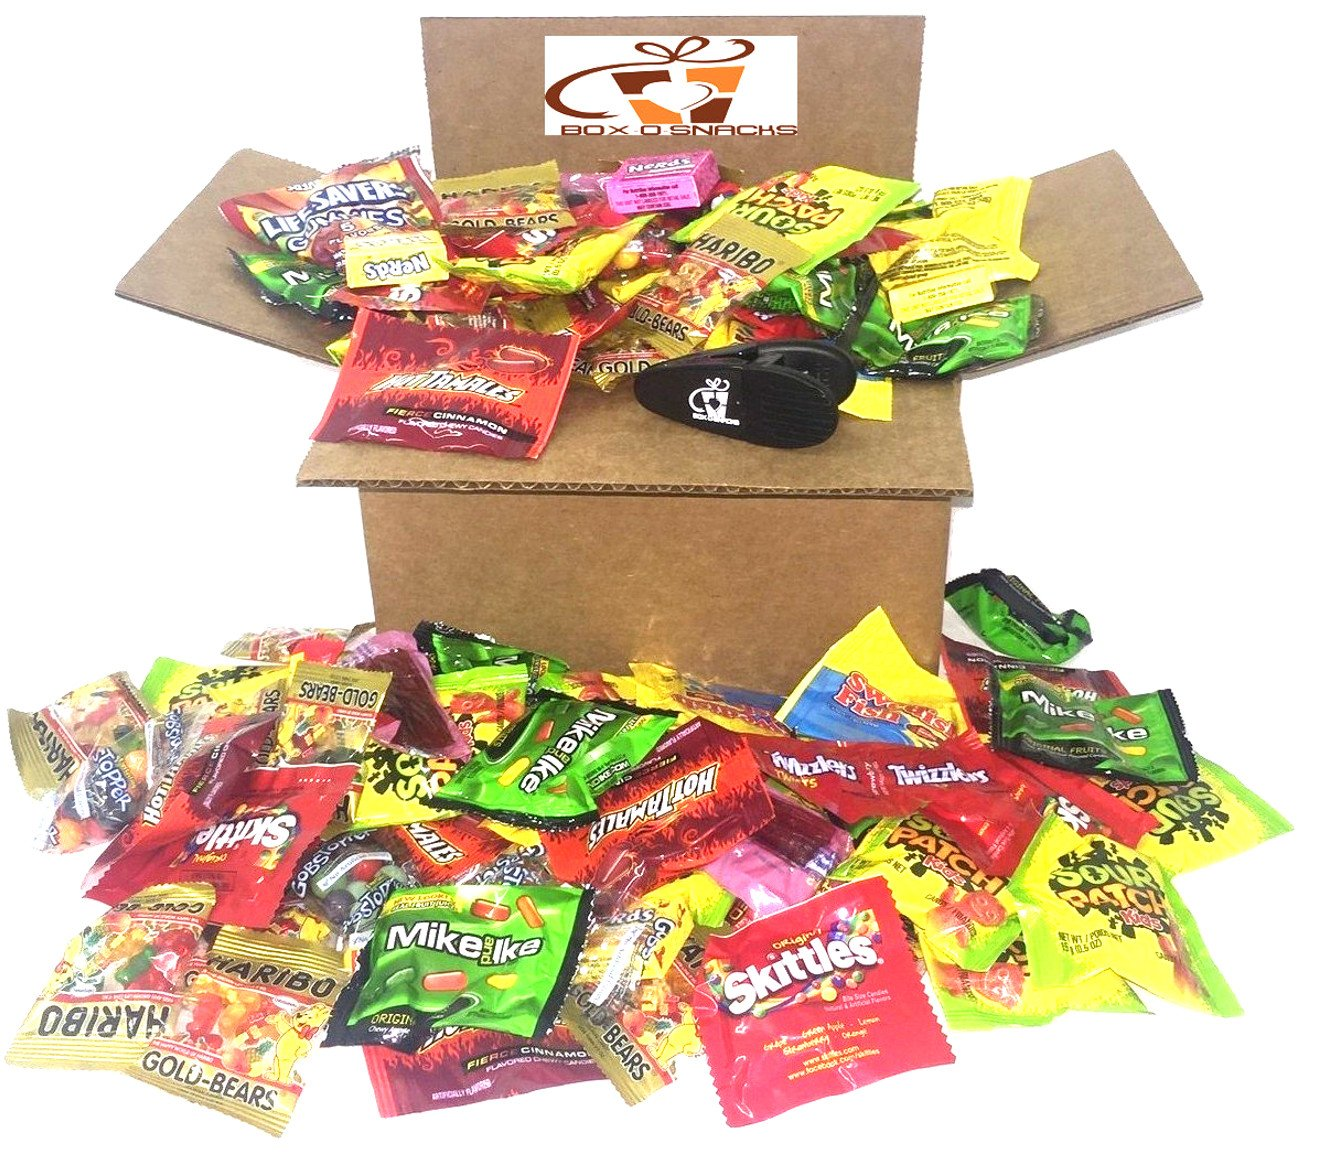 Box-O-Snacks Super Candy Variety Box 6 Pounds of Candy by The Snack Pack Co (Image #1)